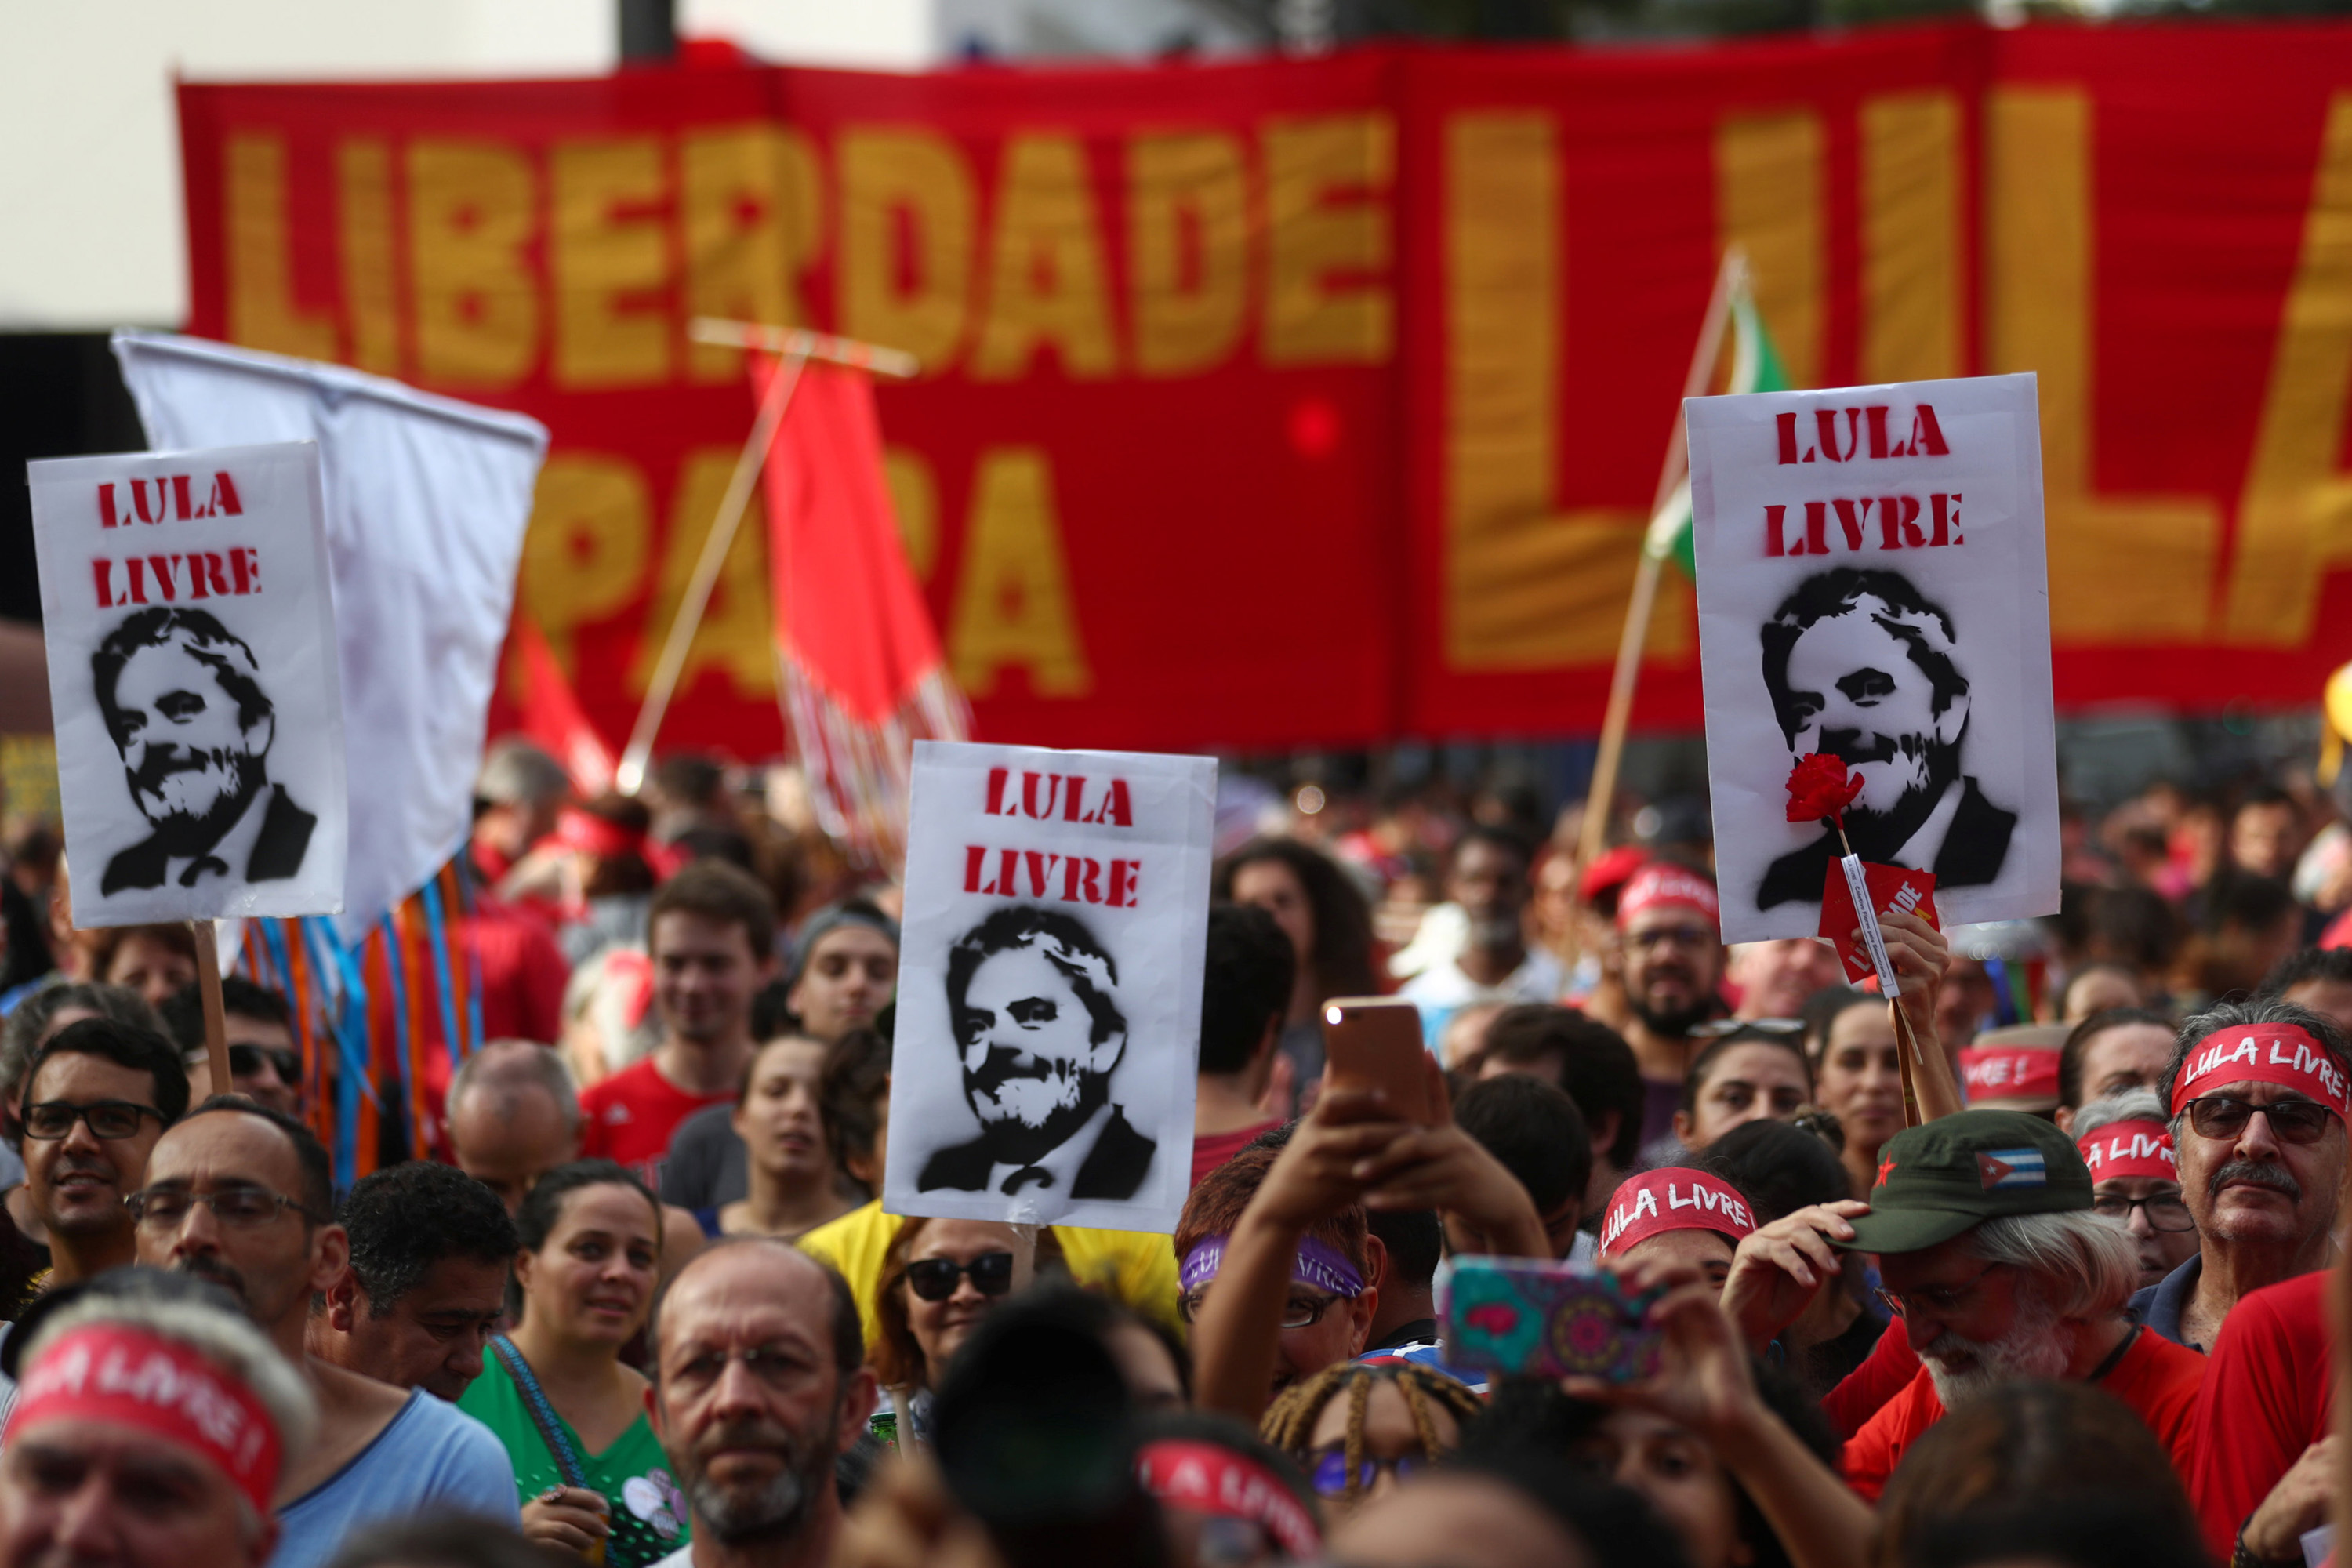 Supporters of Brazil's former president Luiz Inacio Lula da Silva demonstrate to demand Lula's freedom on the one-year anniversary of his arrest, in Sao Paulo, Brazil, April 7, 2019. REUTERS/Amanda Perobelli